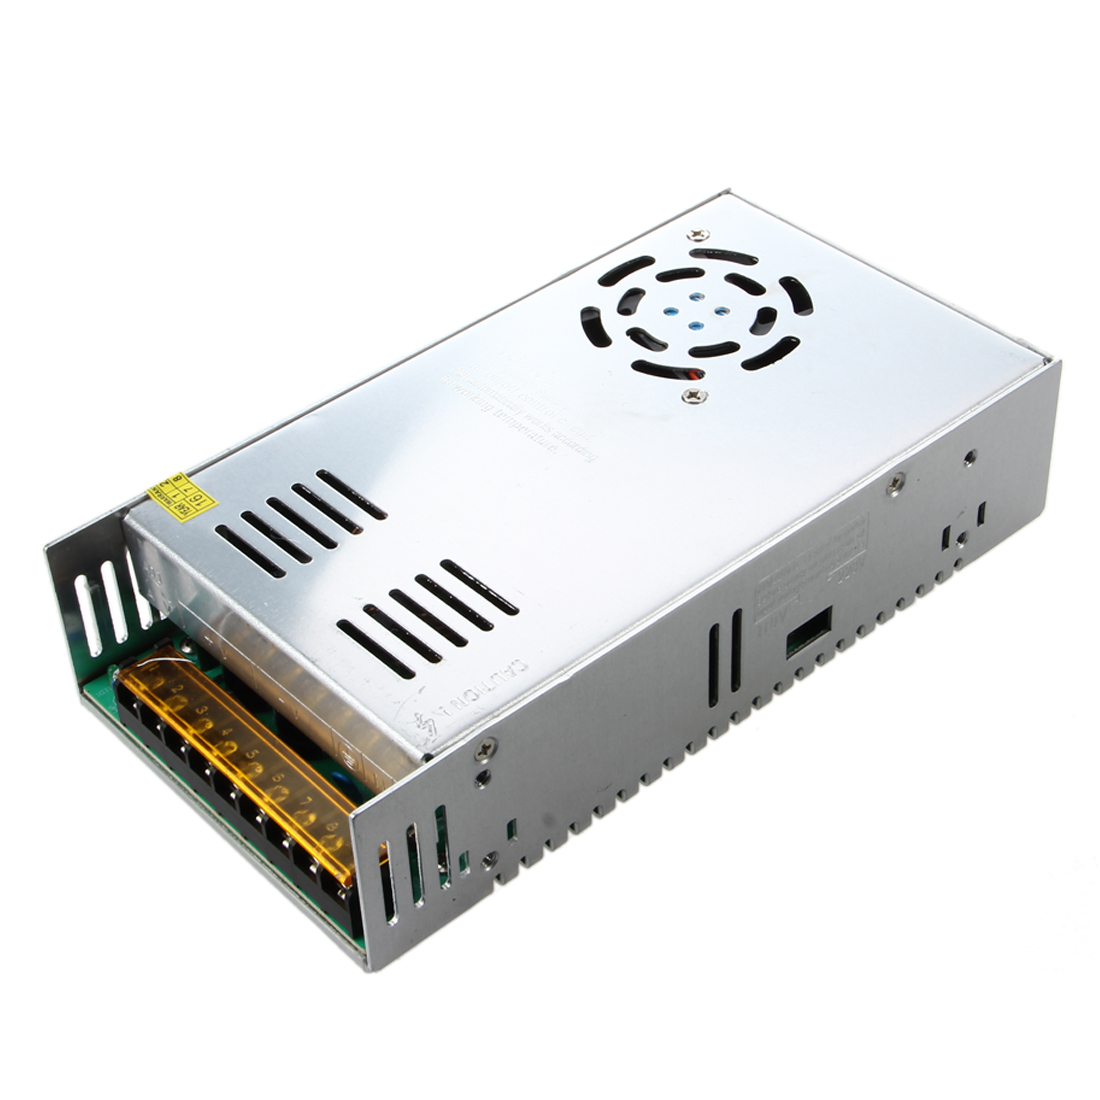 DSHA New Hot 400W Switch Power Supply Driver for LED Strip Light DC 12V 33A hot 12v 50a 600w 100 264v electronic transformer high quality safy led current driver for led strip 3528 5050 power supply